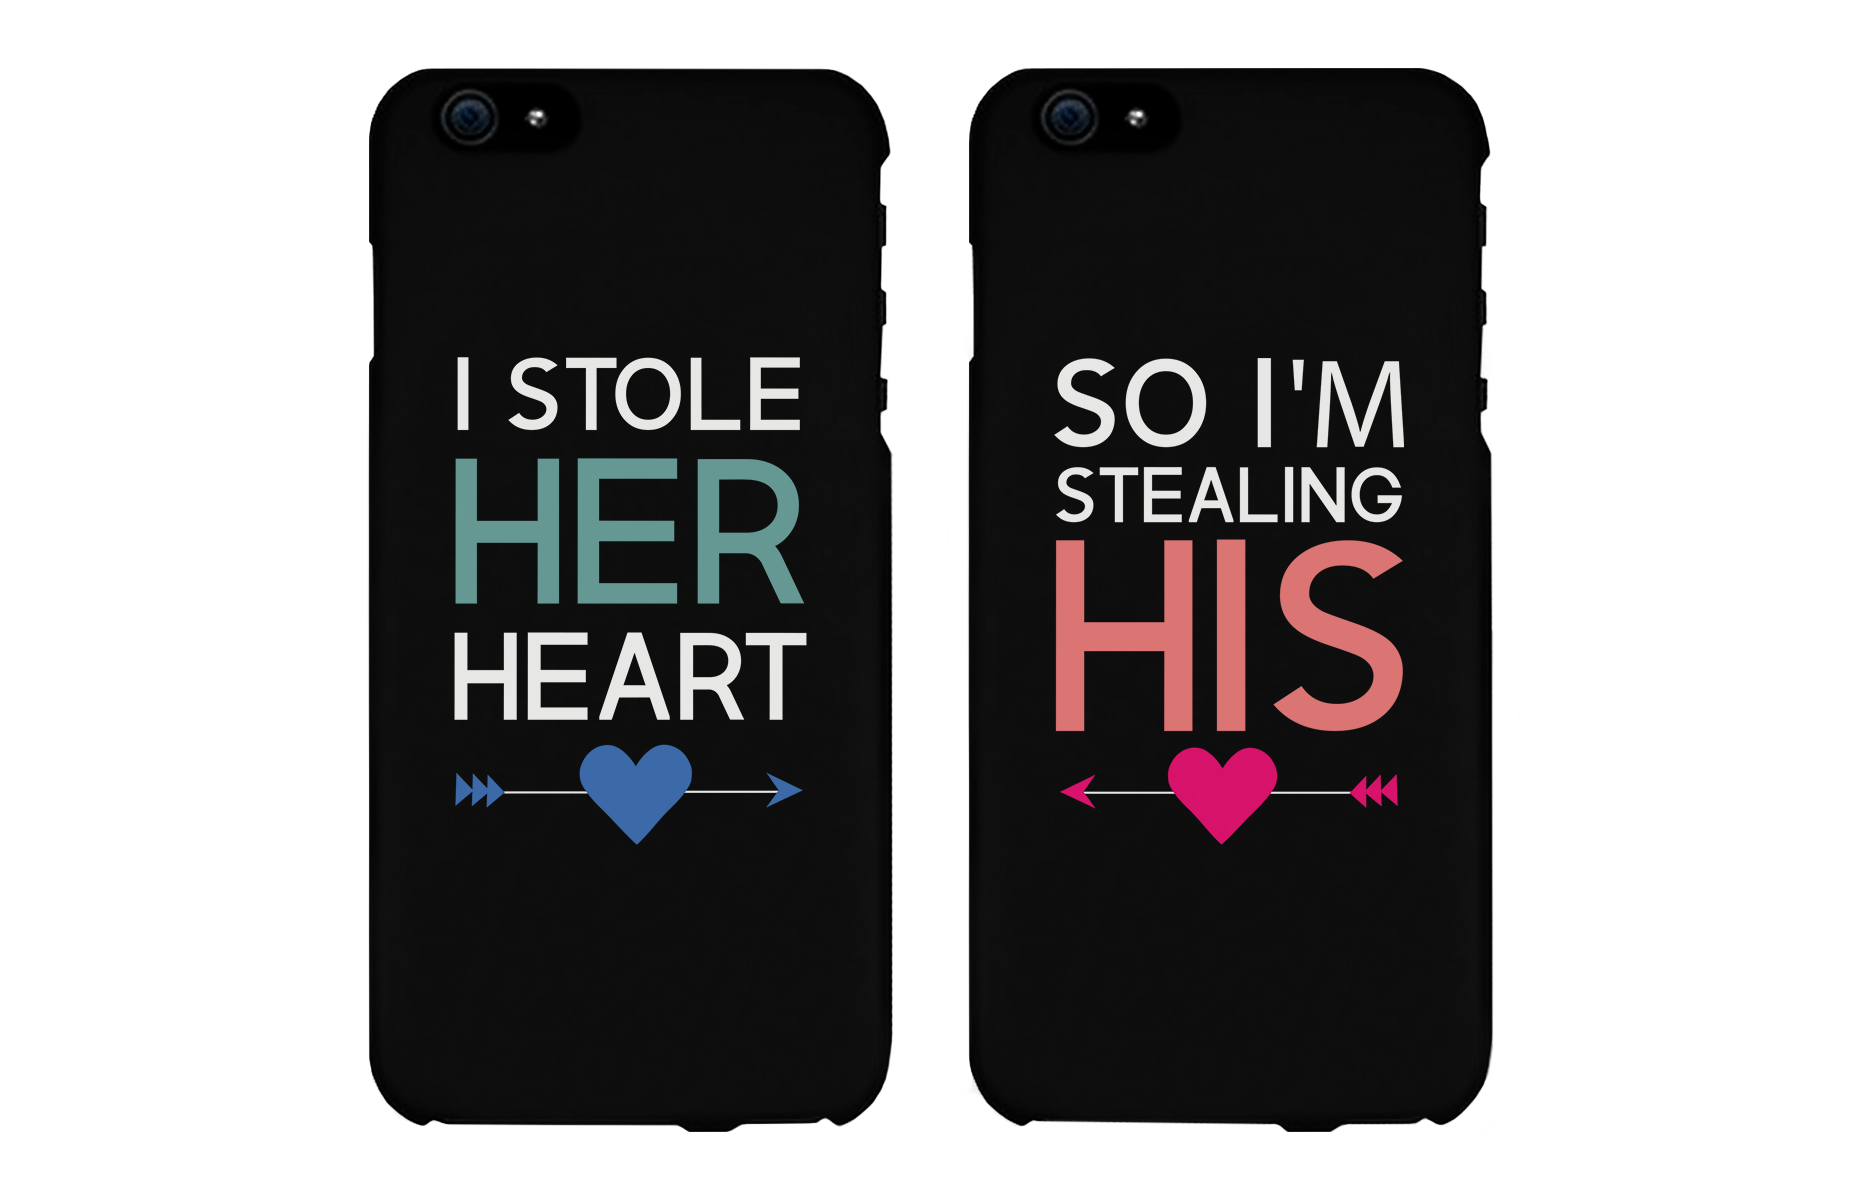 official photos 56147 9adfd I Store Her Heart, So I'm Stealing His Cute Couple Matching Phone Cases